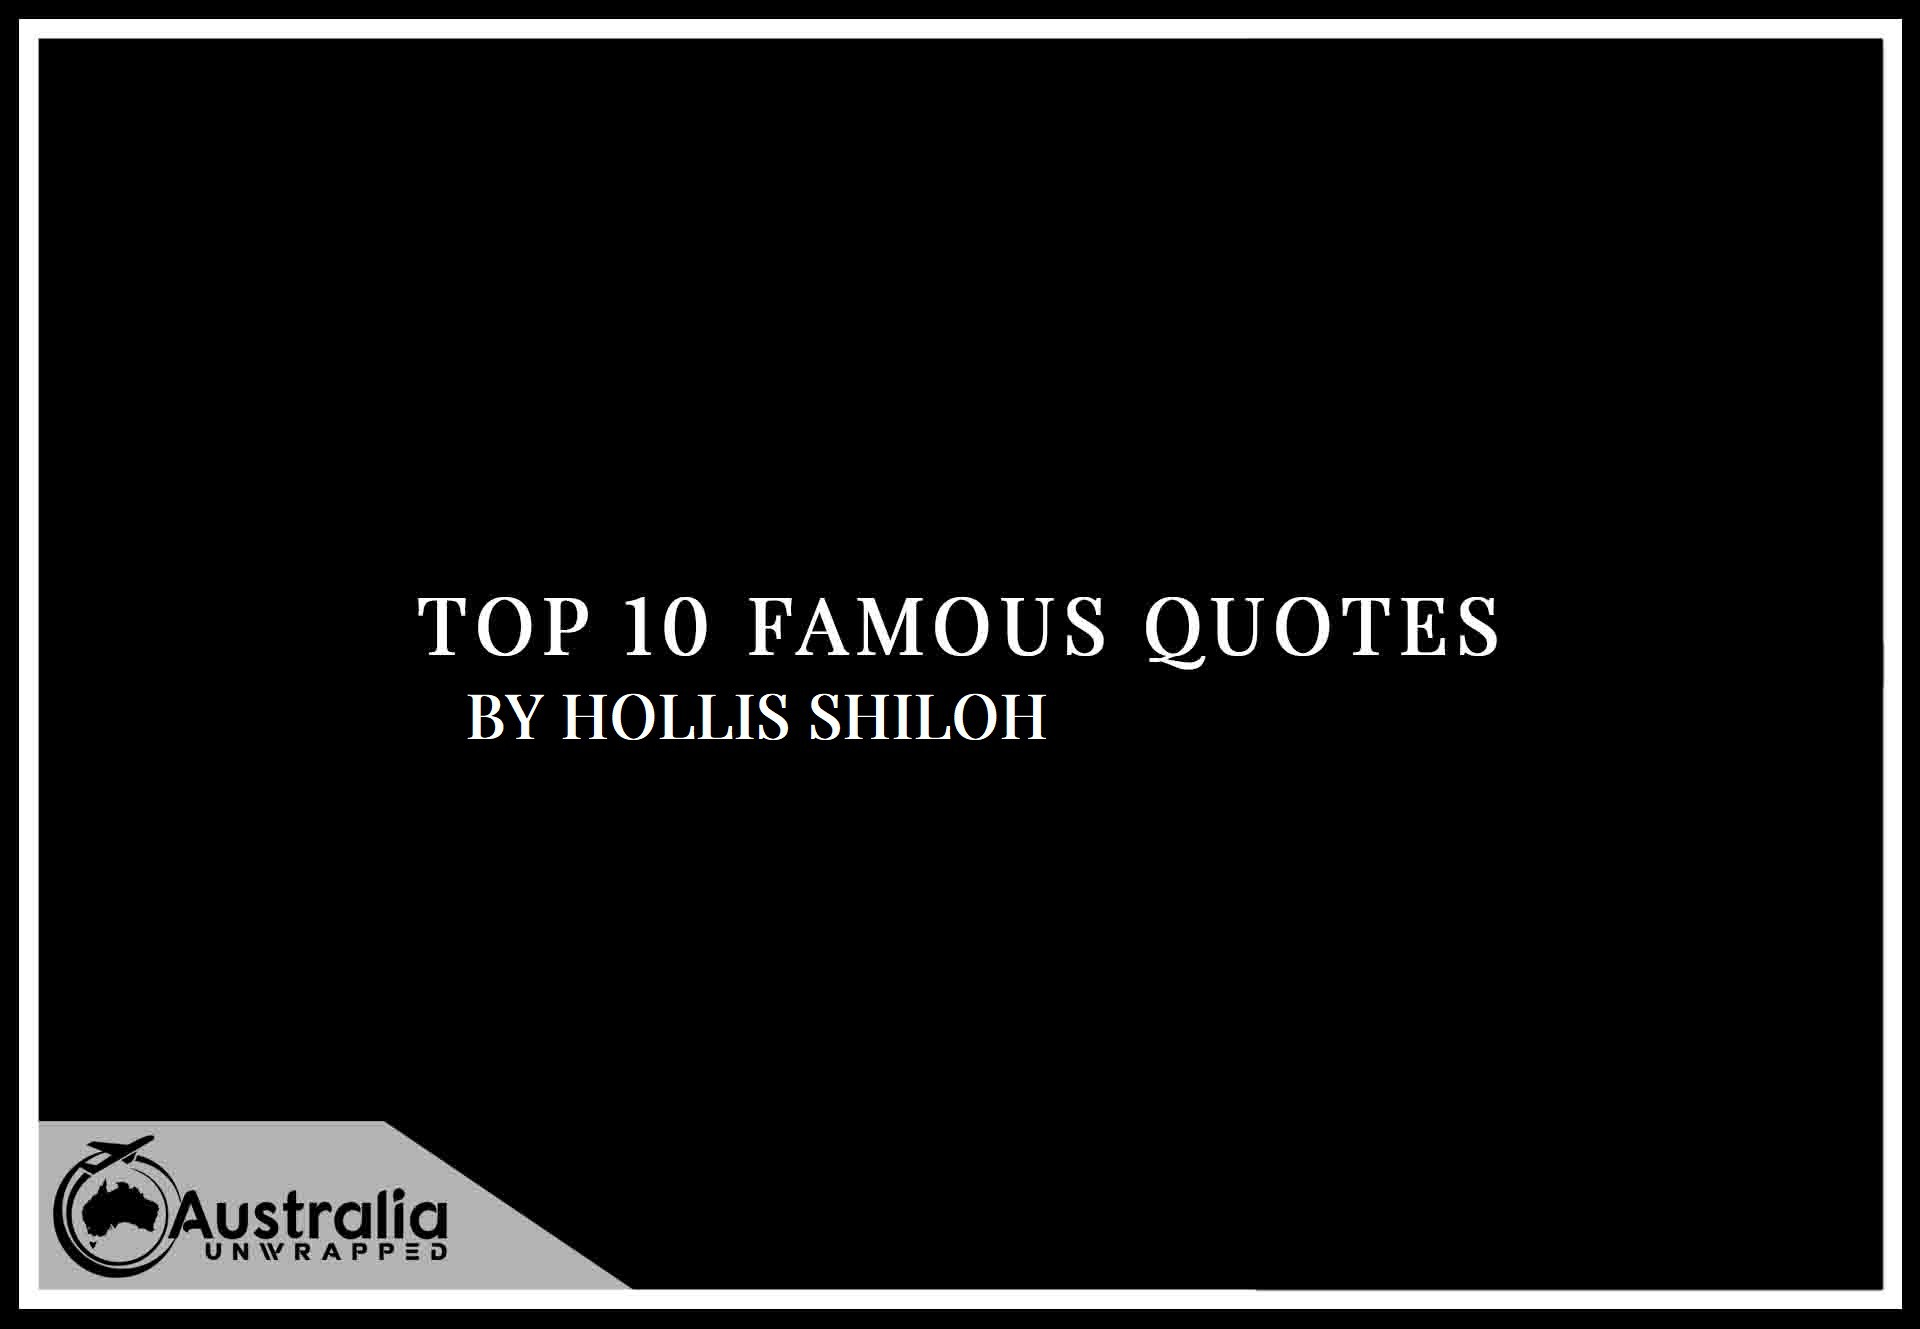 Top 10 Famous Quotes by Author Hollis Shiloh